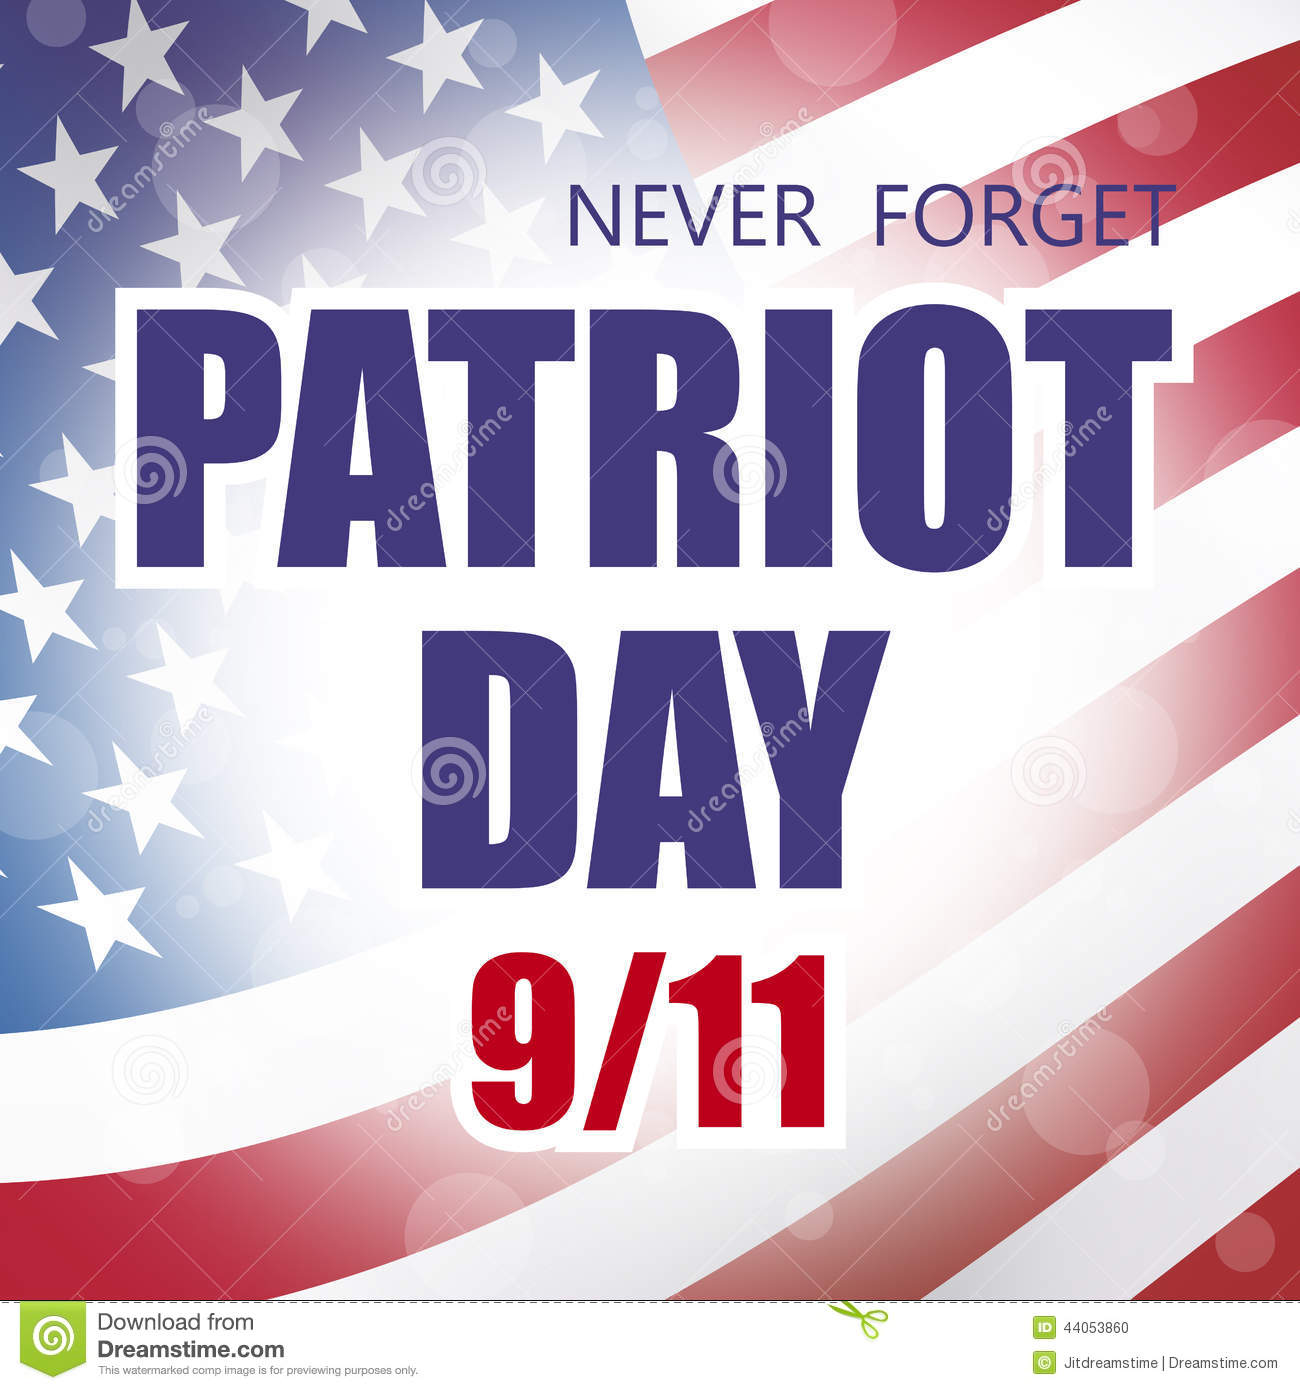 America clipart patriot day Patriot collection patriot day Stock